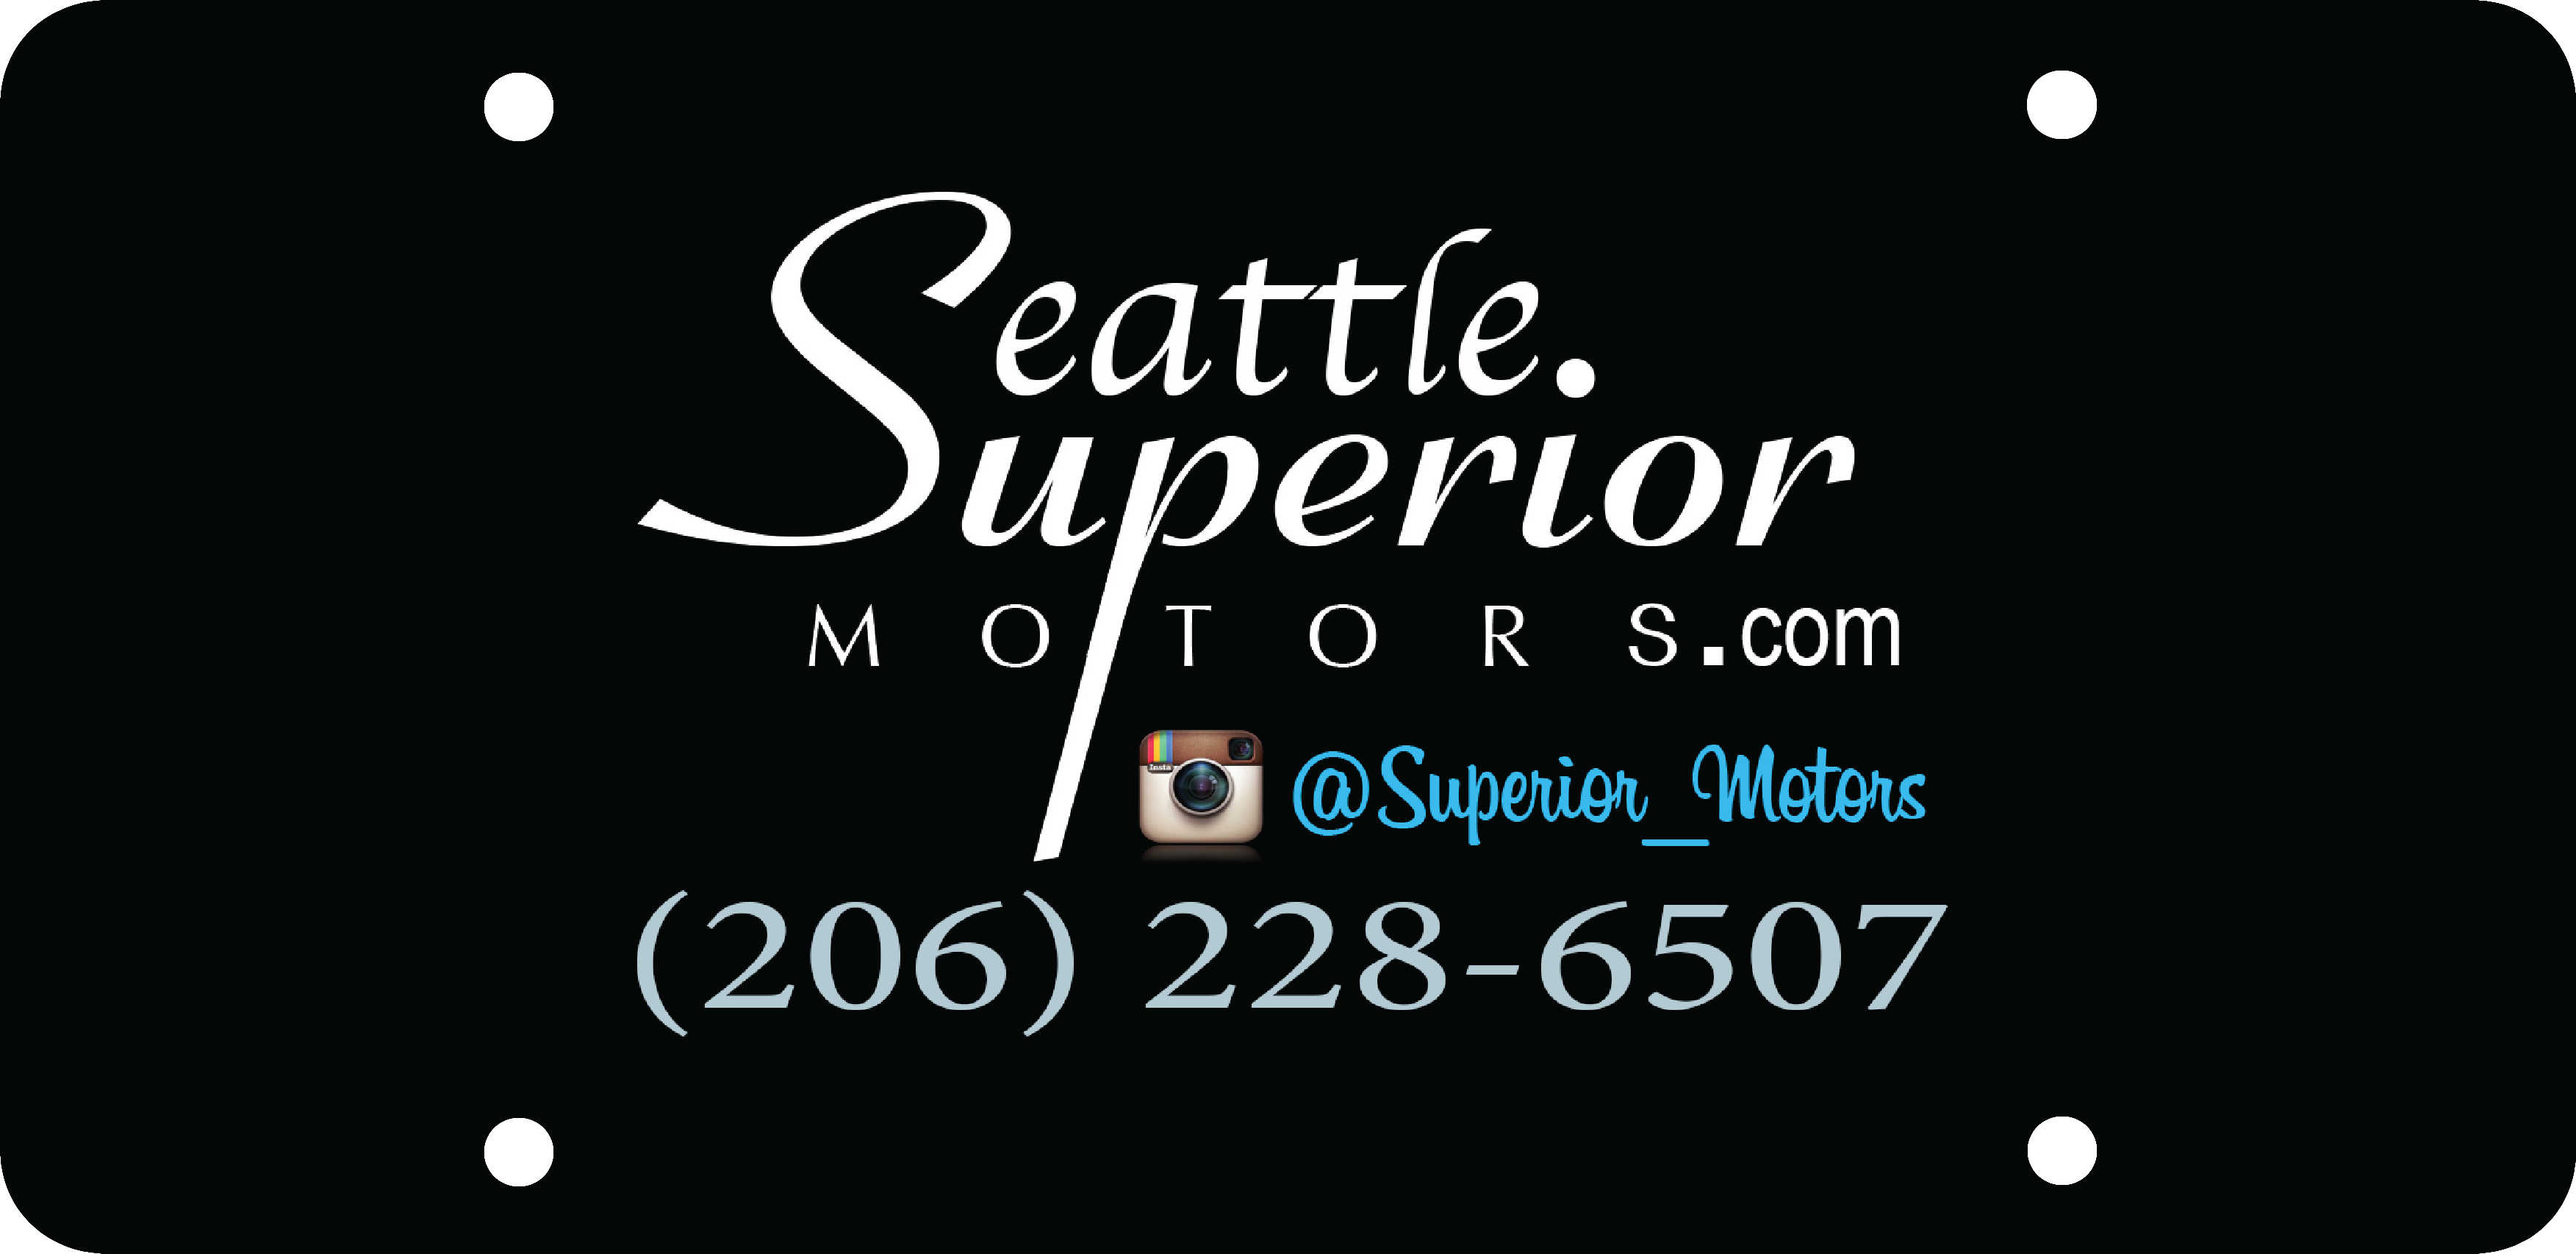 Seattle Superior Motors Digital Insert